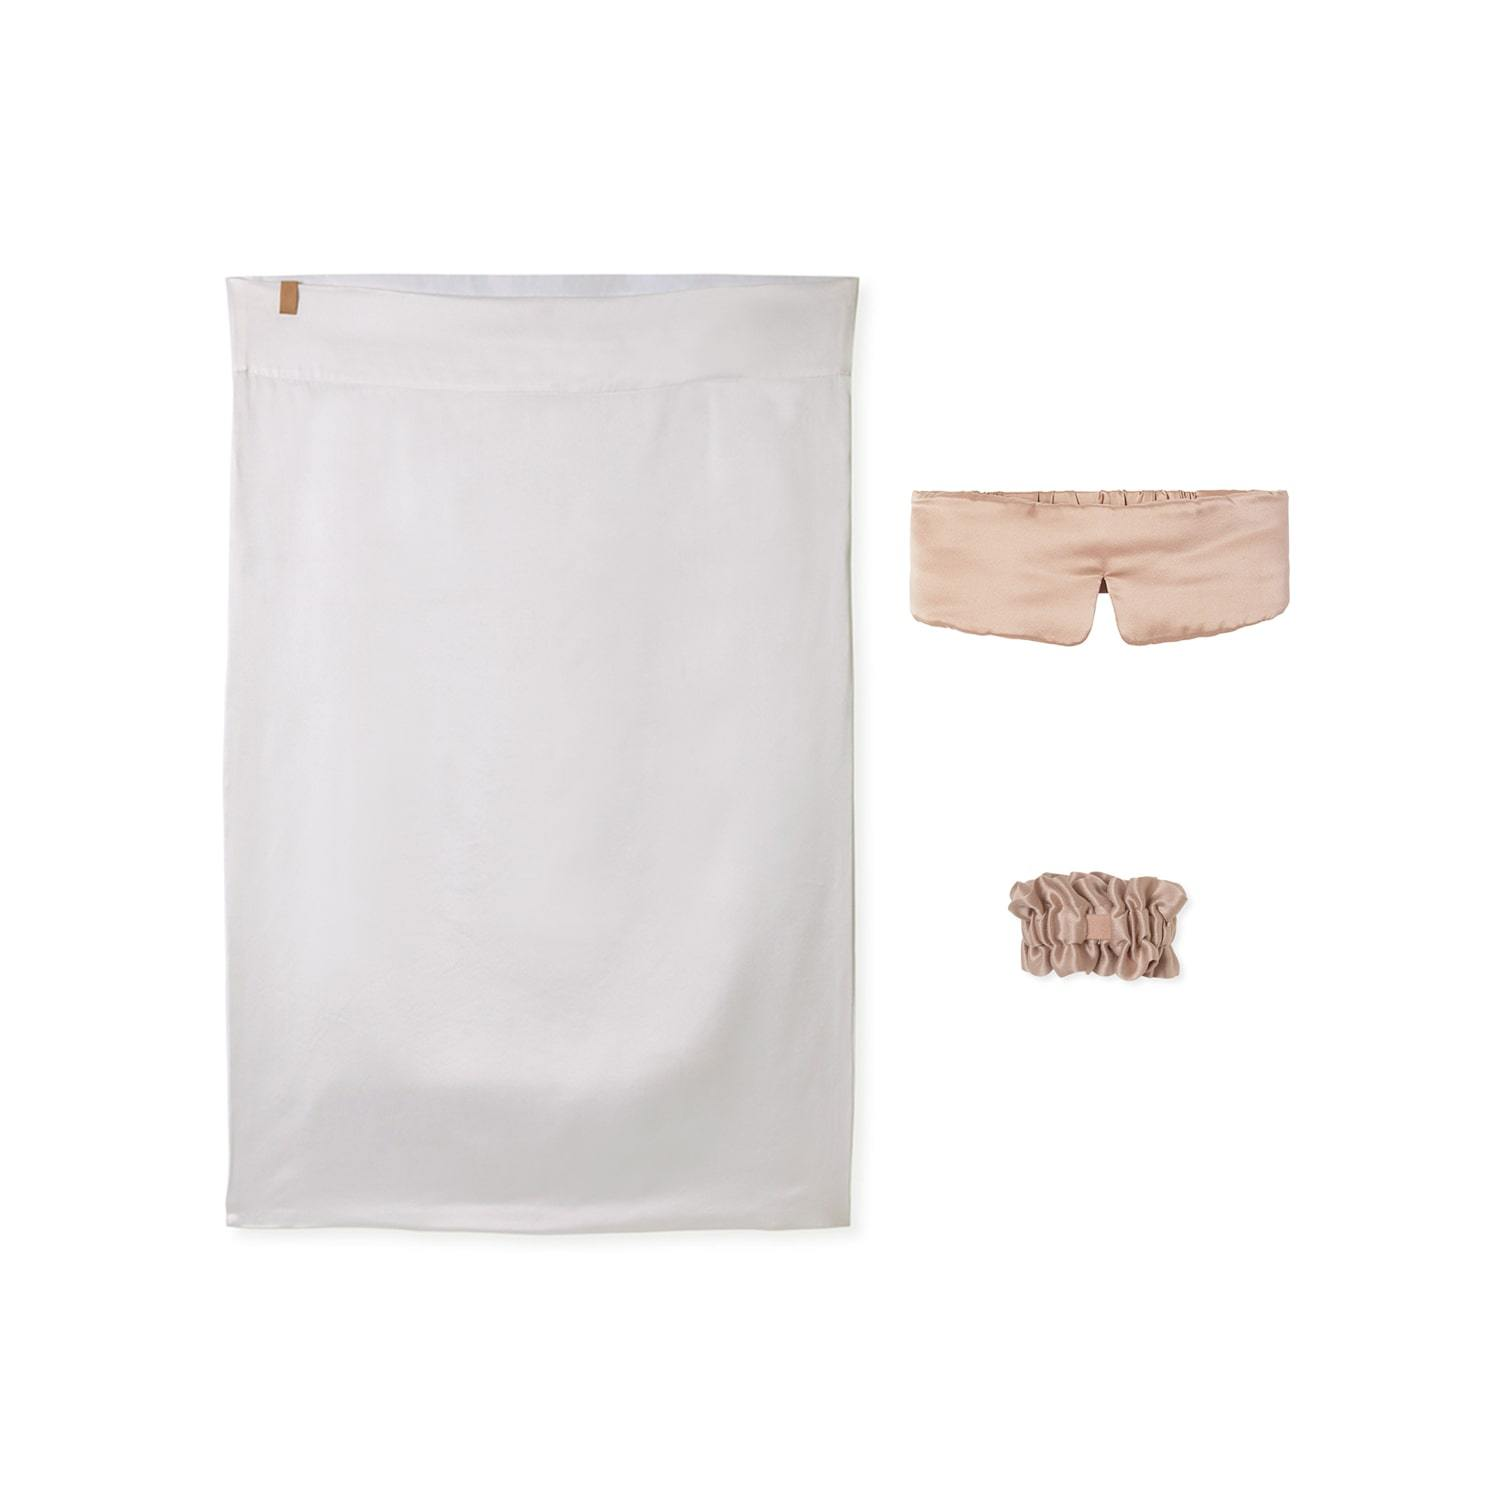 Lunya Sleepwear Washable Silk Nightstand Kit - #Bare/White